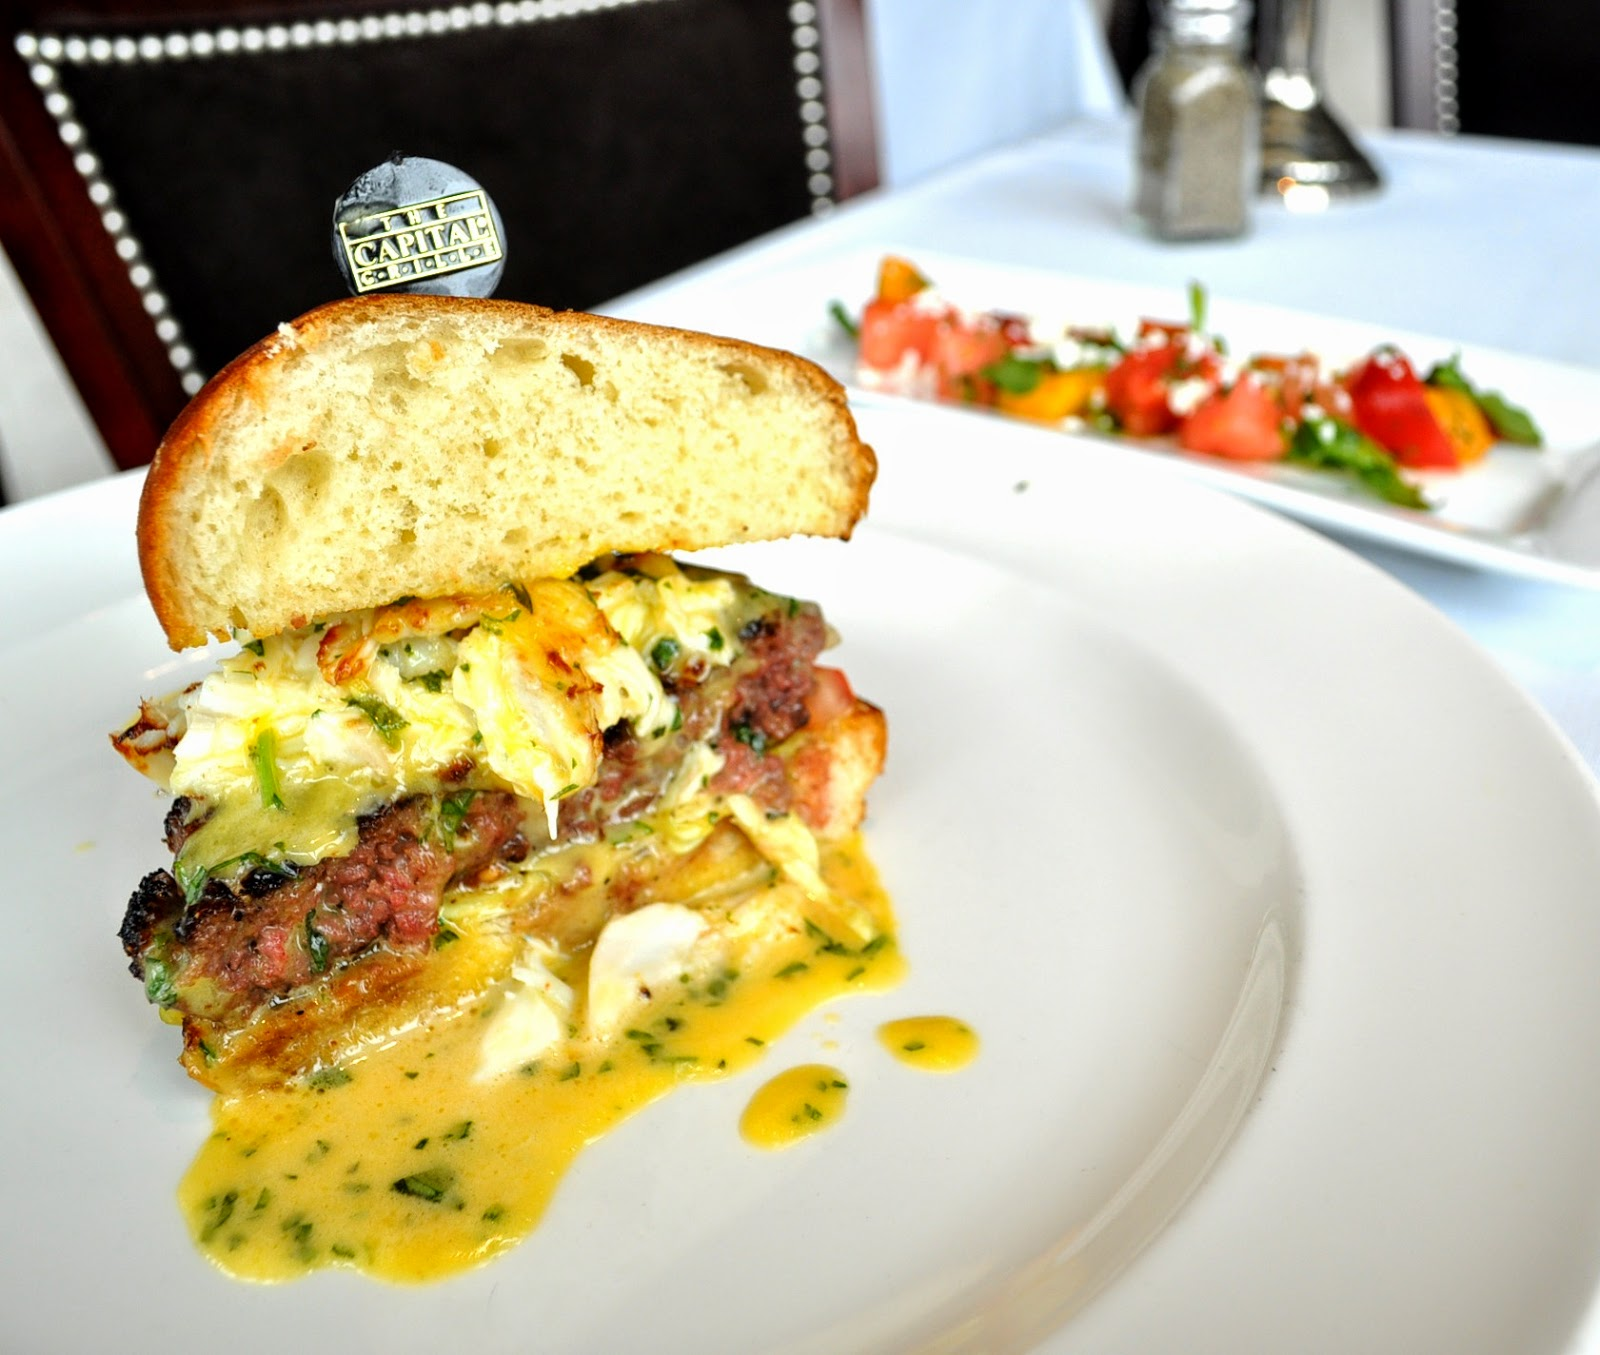 Restaurant Review: Capital Grille & Their New Burgers